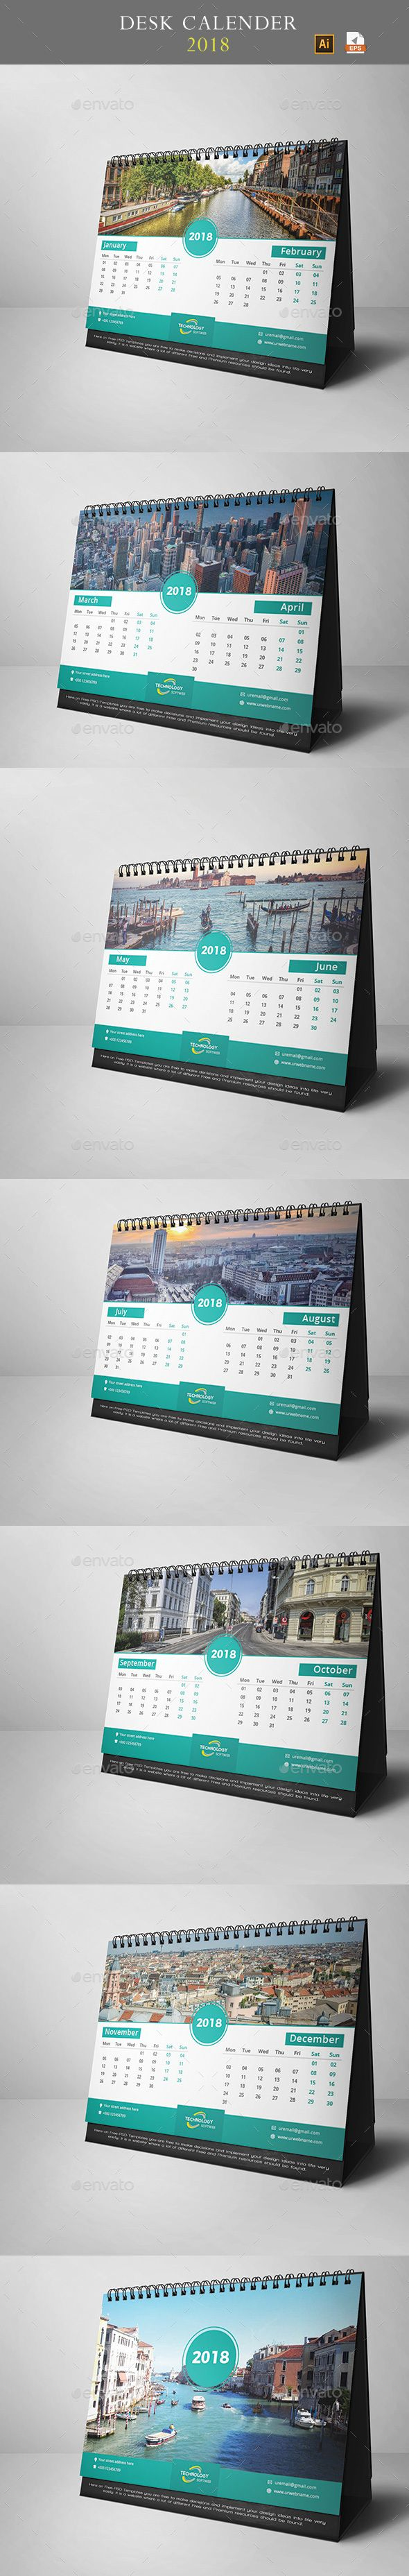 Desk Calendar 2018 - #Calendars #Stationery Download here: https://graphicriver.net/item/desk-calendar-2018/20008480?ref=alena994